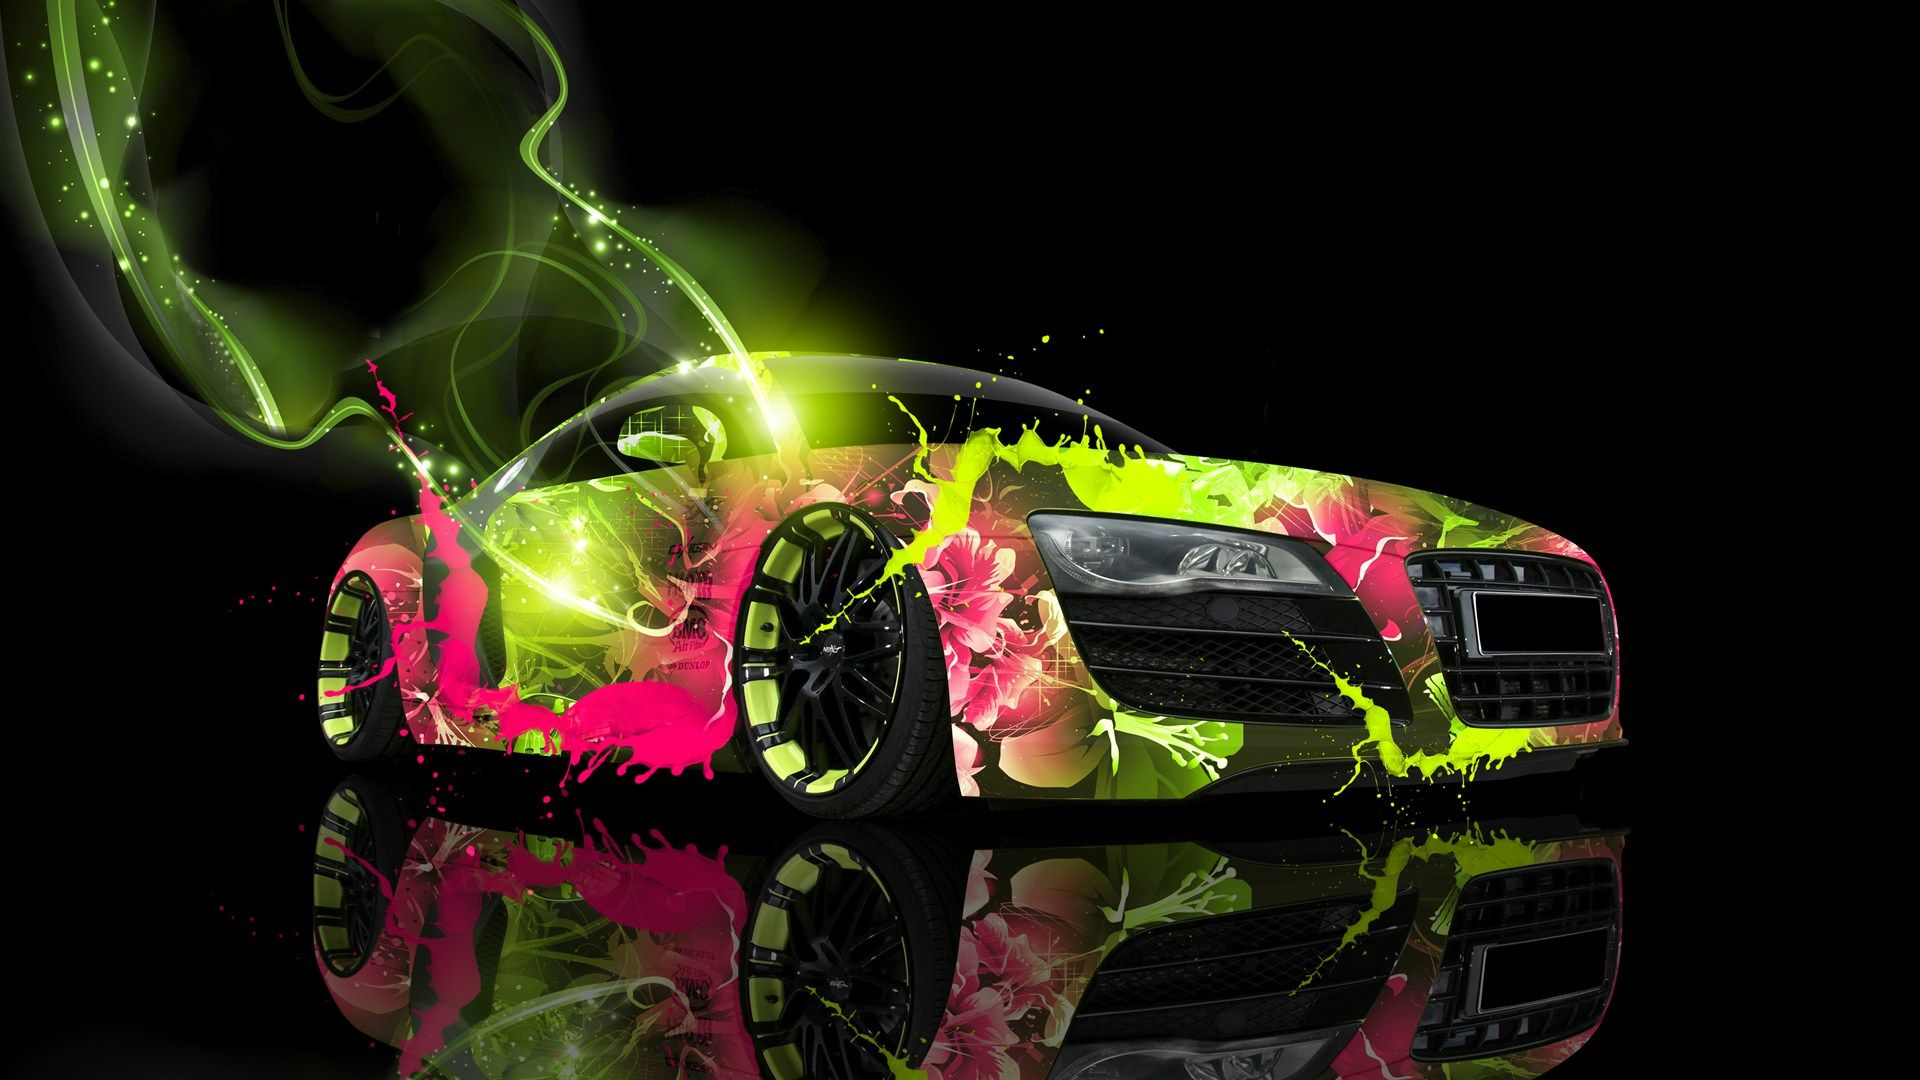 Abstract Car Wallpapers Wallpaperboat